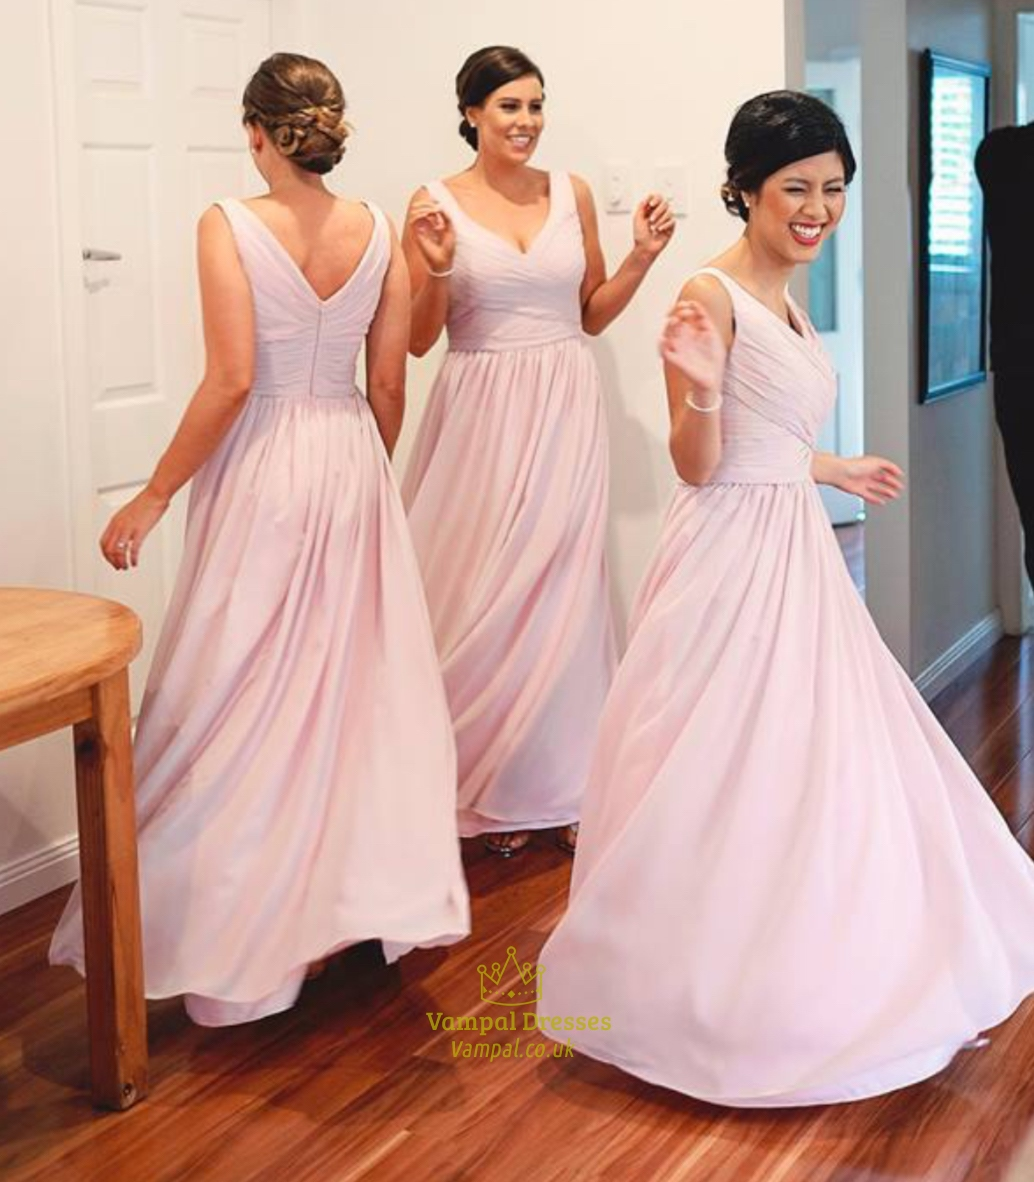 Light pink bridesmaid dresses vampal dresses pink sleeveless criss cross bodice v neck chiffon bridesmaid dress ombrellifo Image collections